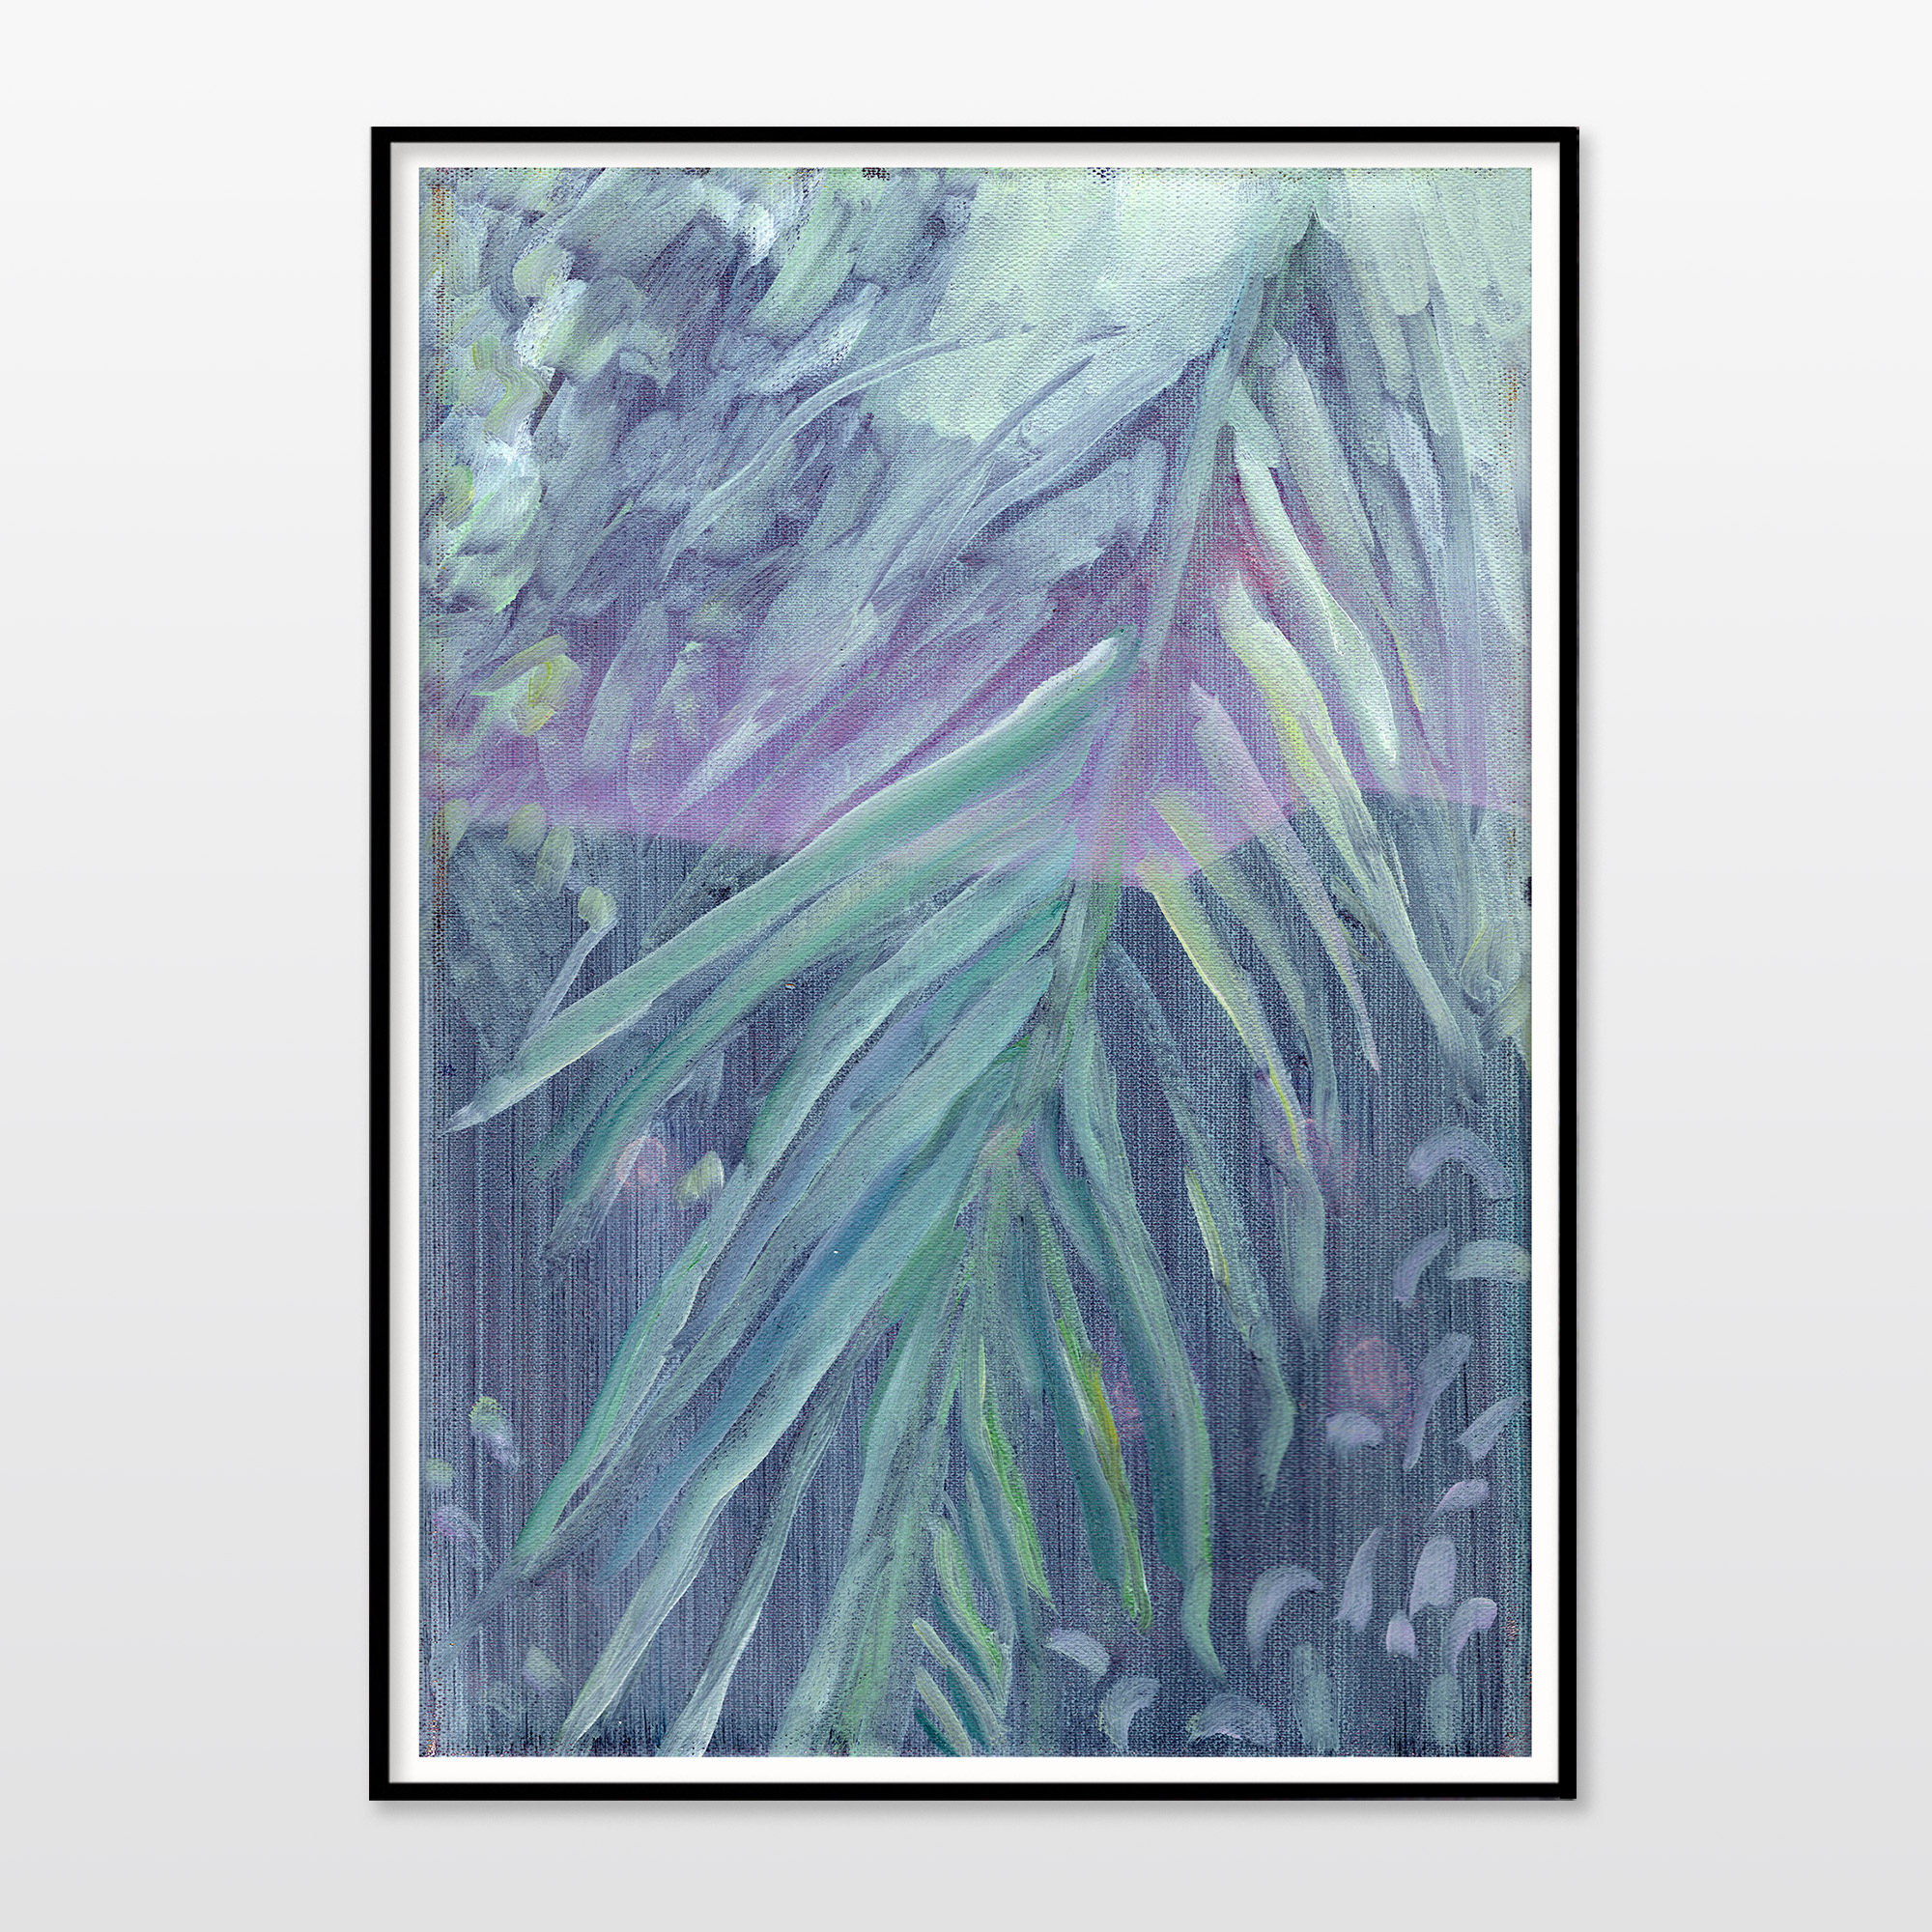 posters-prints, giclee-print, colorful, figurative, graphical, illustrative, botany, nature, blue, green, purple, turquoise, ink, contemporary-art, danish, decorative, design, flowers, forest, interior, interior-design, modern, modern-art, nordic, plants, scandinavien, Buy original high quality art. Paintings, drawings, limited edition prints & posters by talented artists.